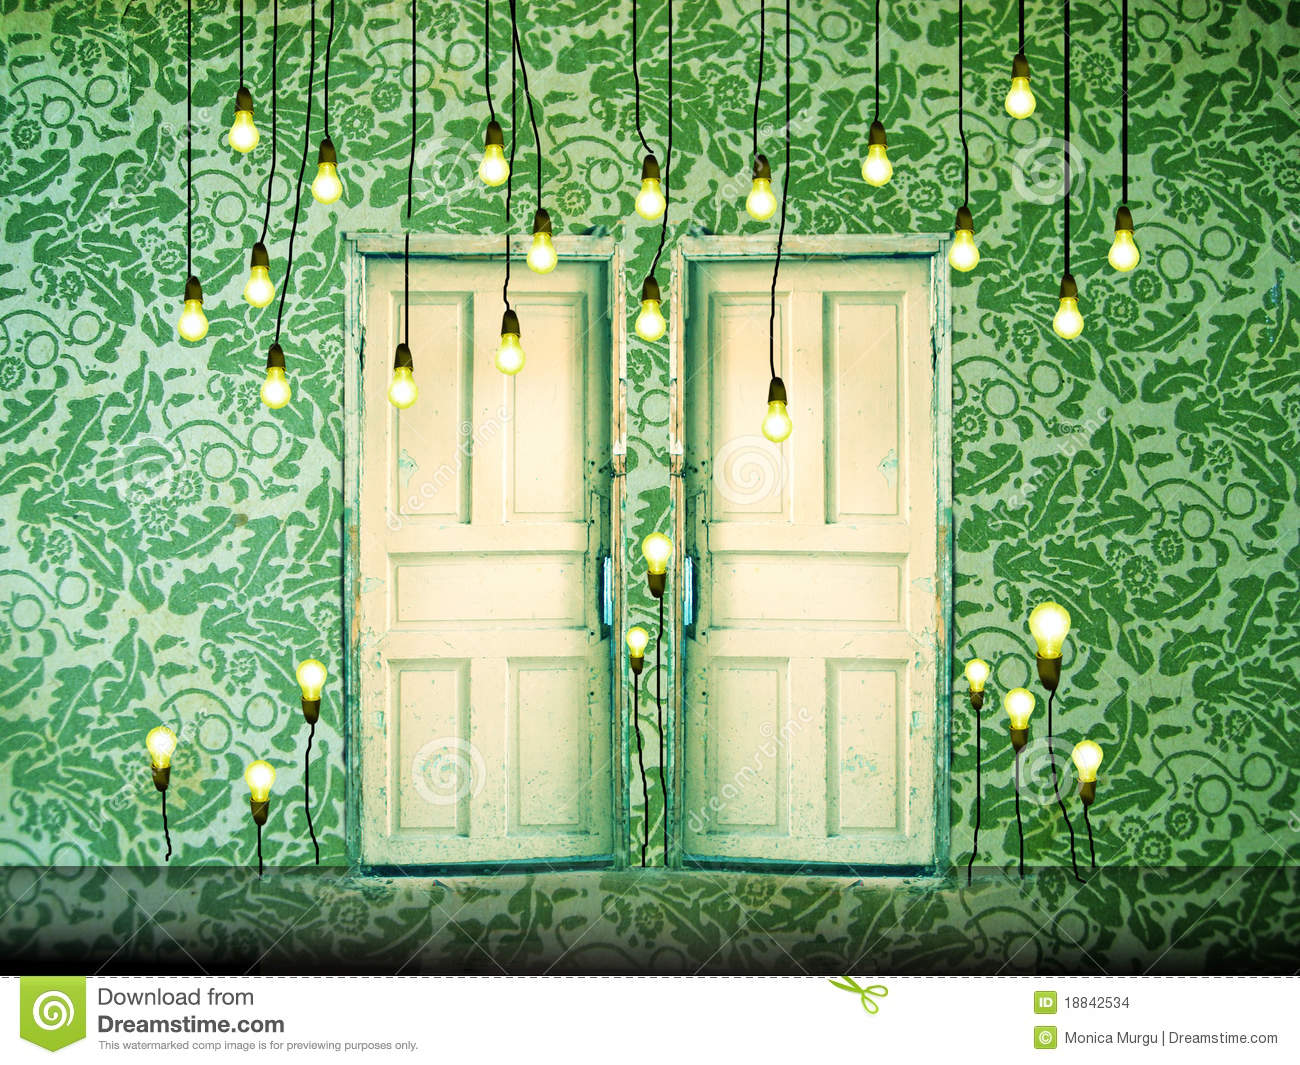 Fall Barn Wallpaper Surreal Background With Doors And Liht Bulbs Stock Photo